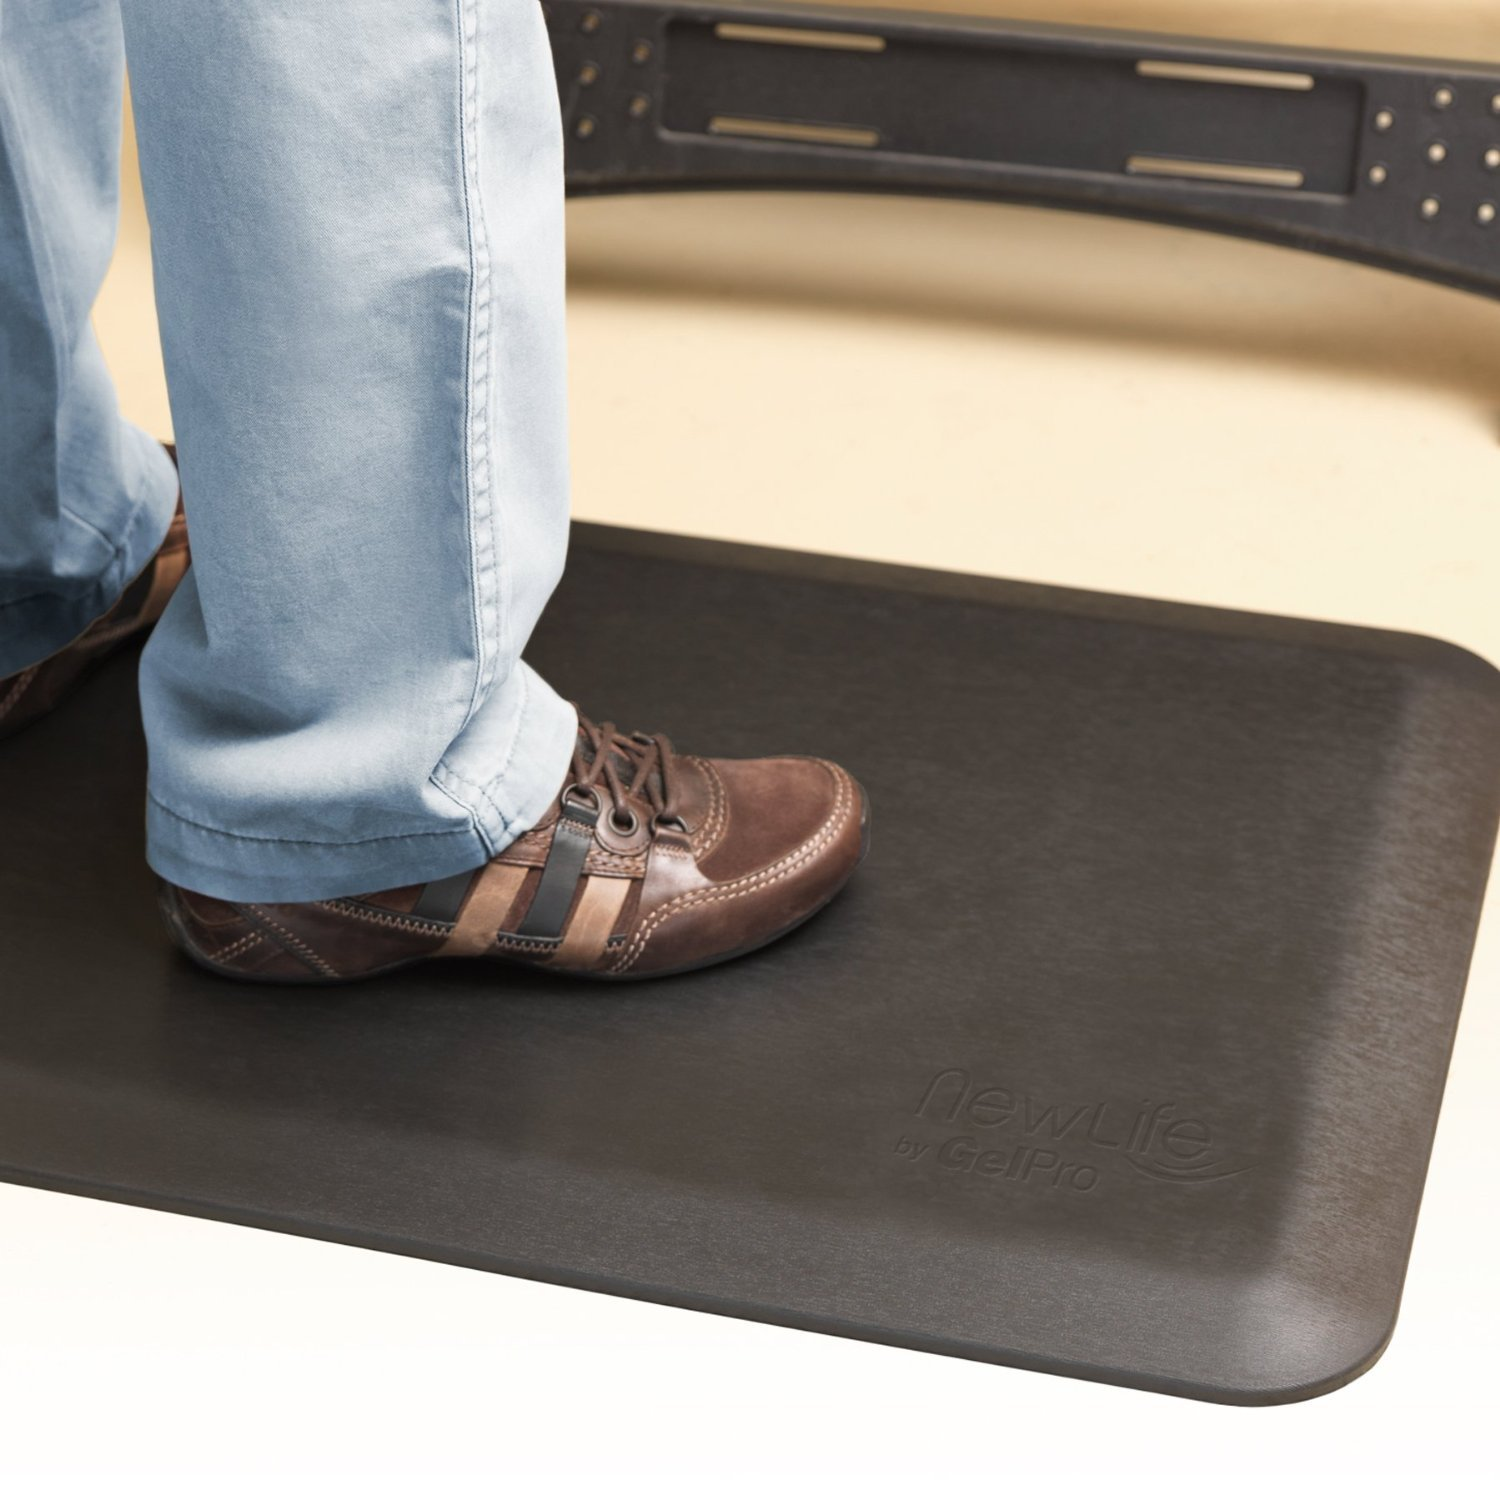 "NewLife by GelPro Anti Fatigue Mat: Eco-Pro Foam Anti-Fatigue Comfort Mat - Standing Desk Pad - Professional Floor Mats for Commercial & Industrial Work - 20"" x 32"" Non Slip Ergonomic Mat - Black by NewLife by GelPro (Image #2)"